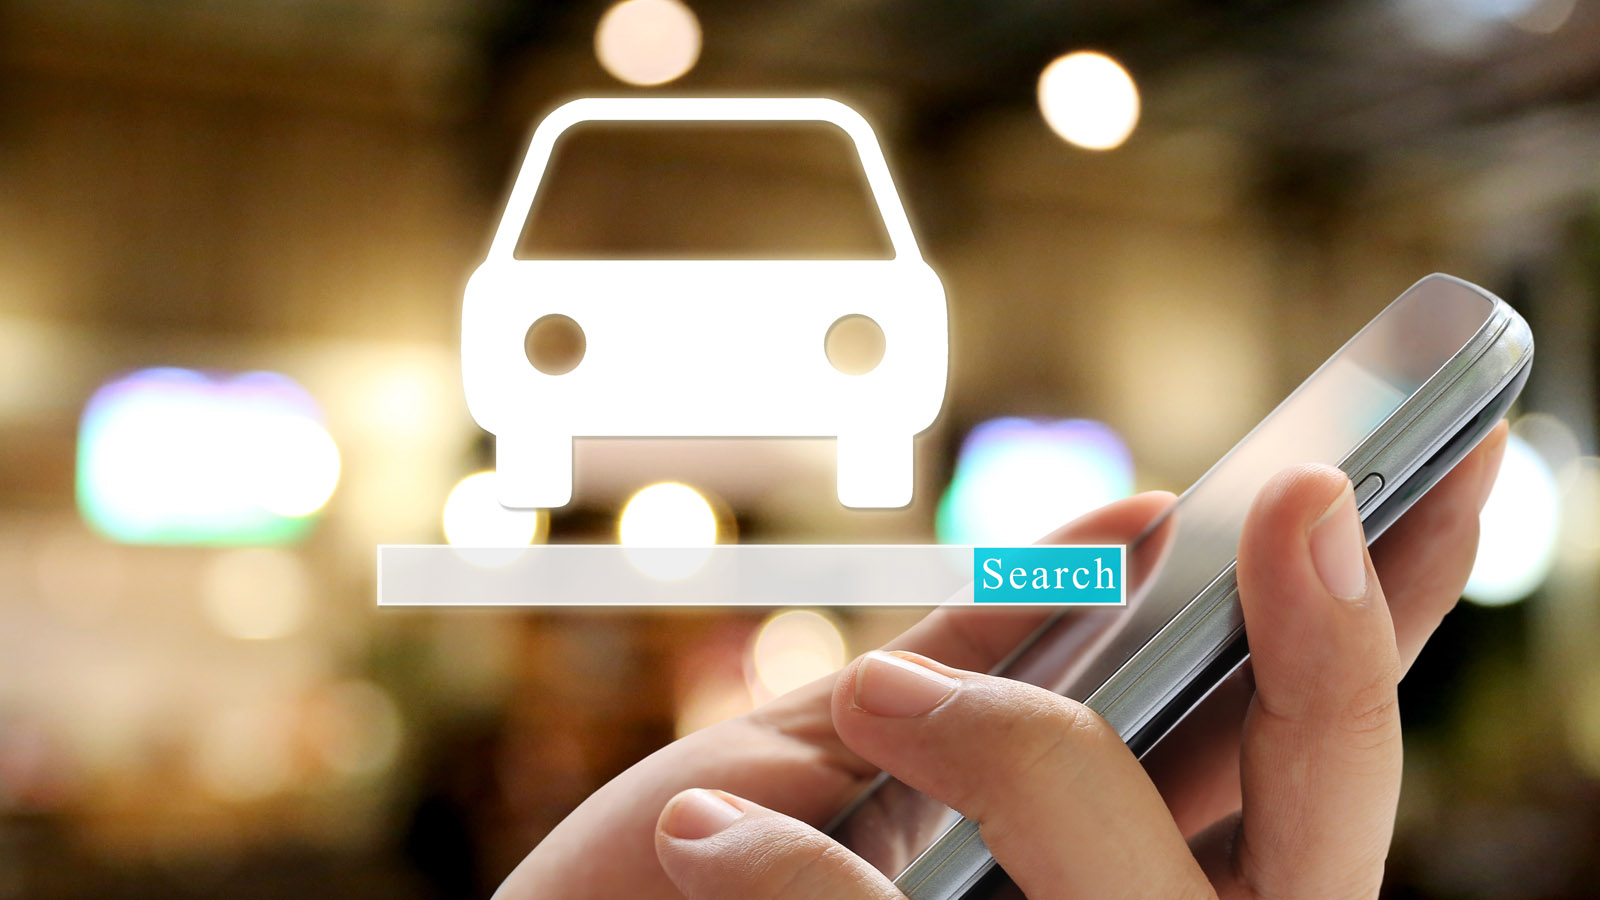 Using a smartphone to search for cars